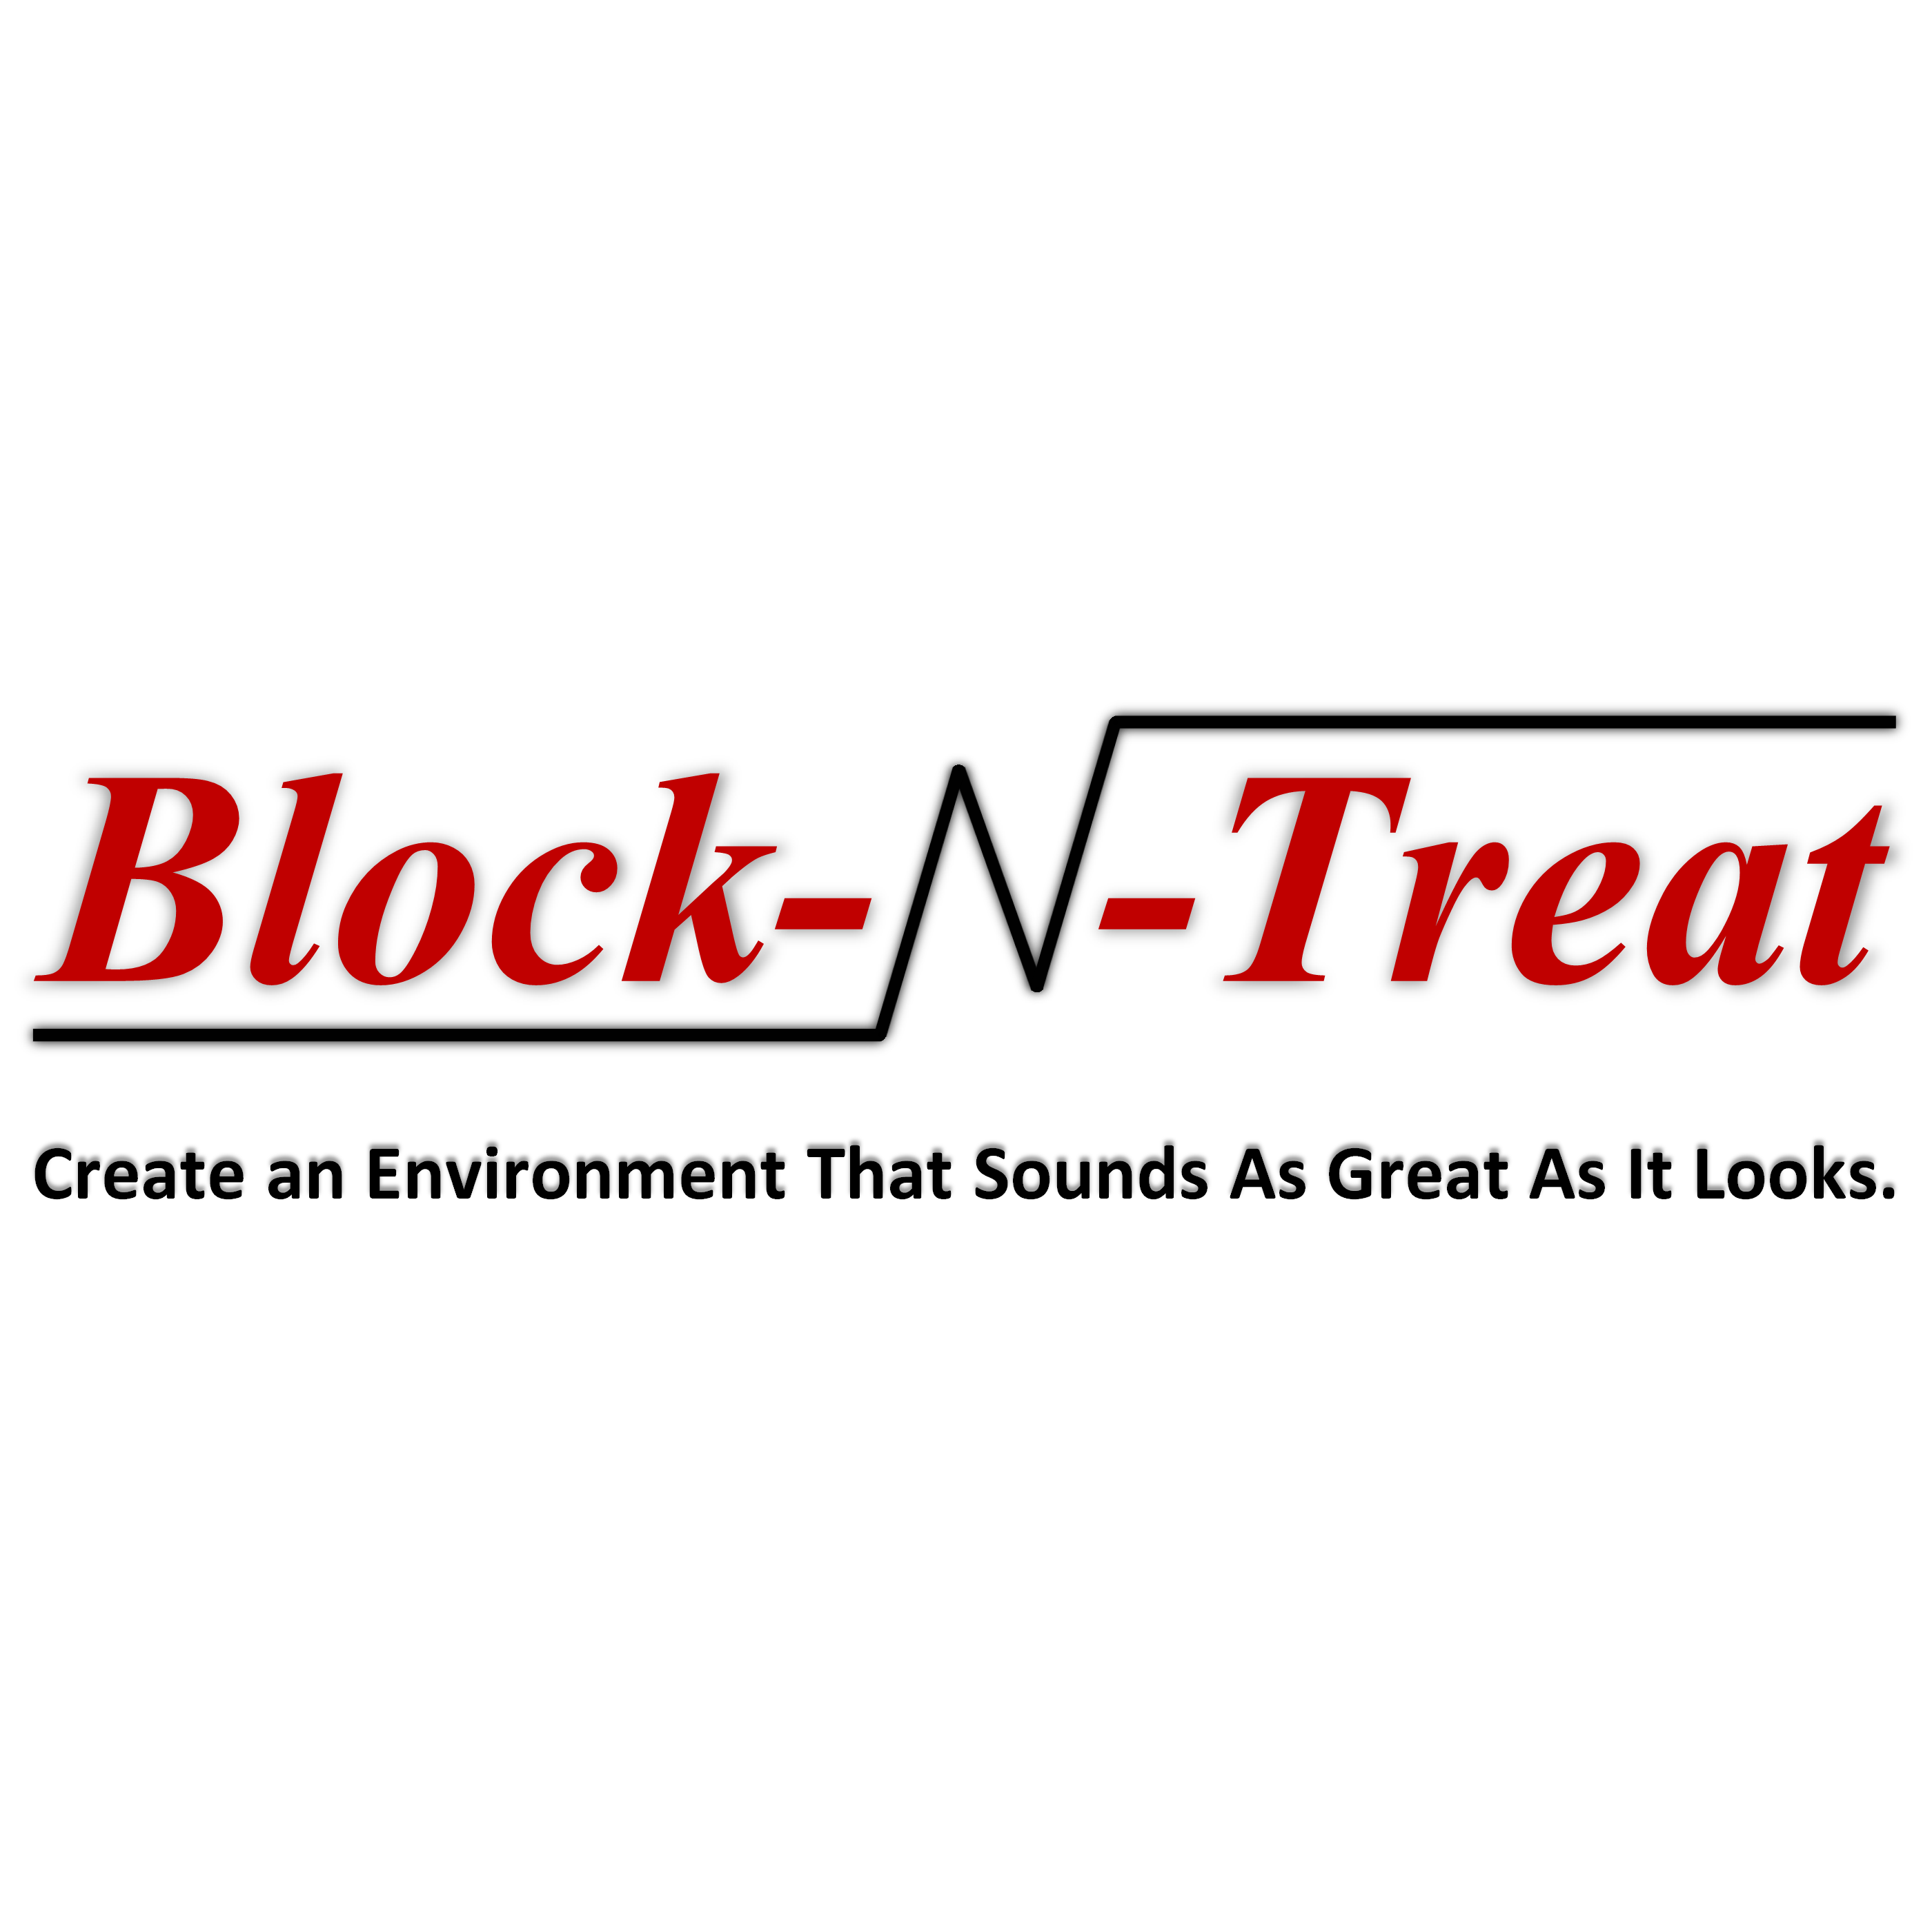 Block-N-Treat's logo